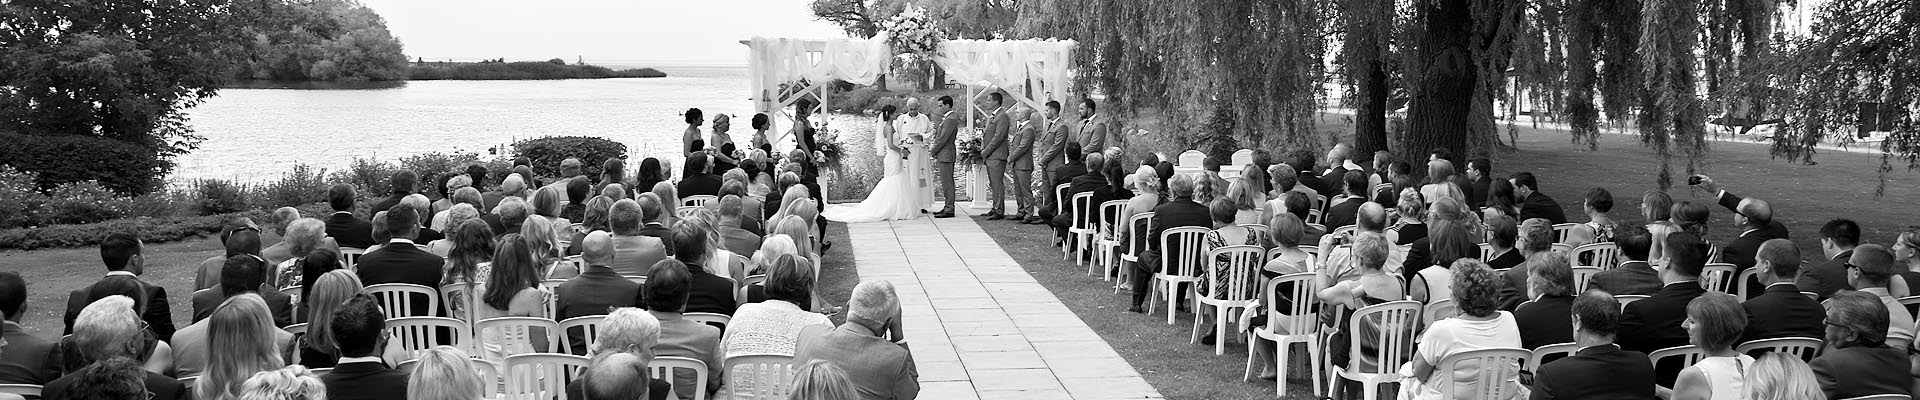 Wedding ceremony at Cranberry Resort